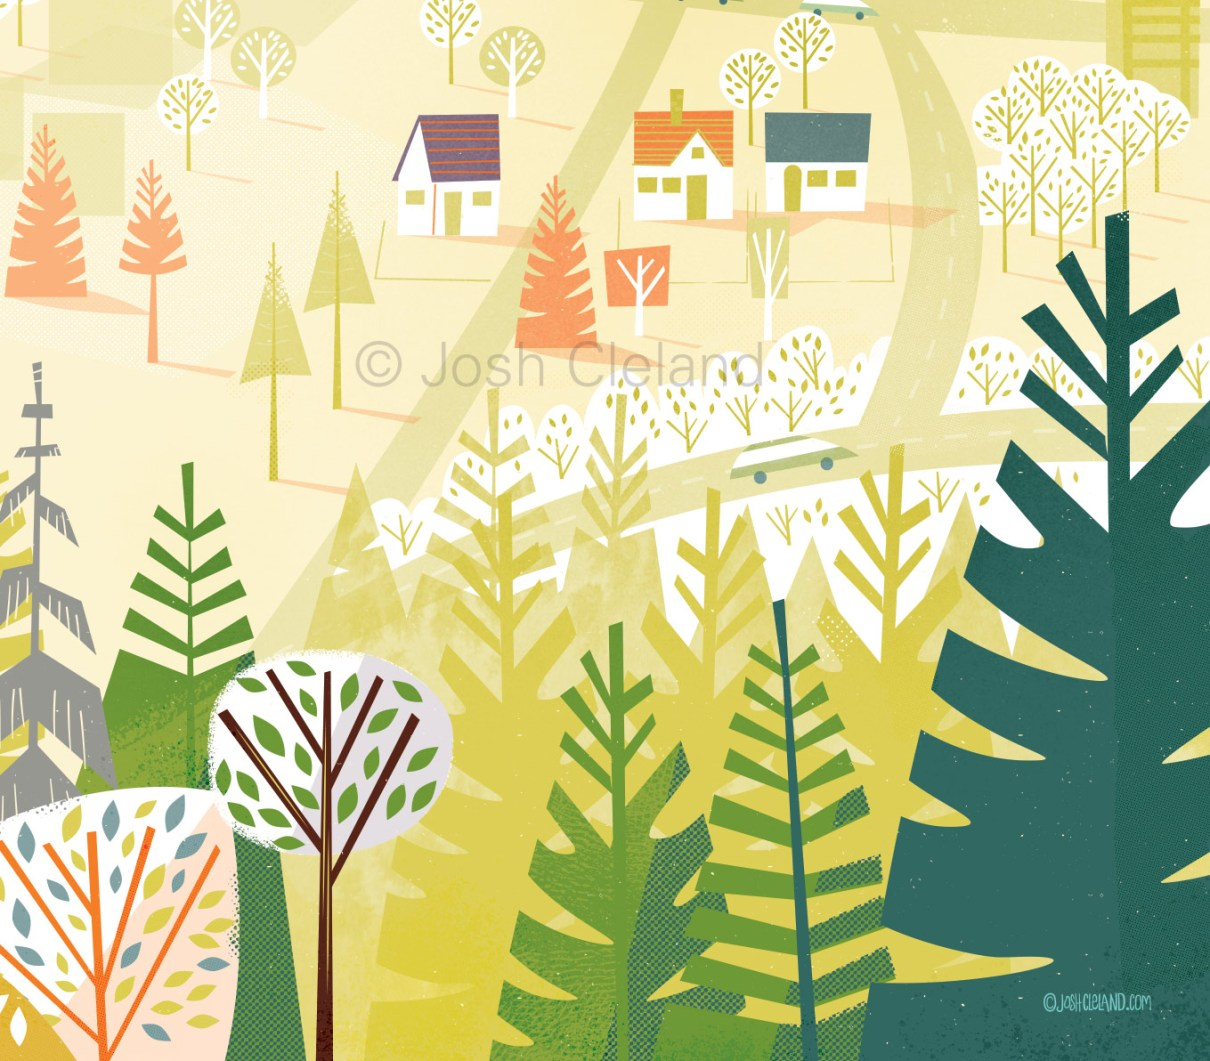 Portland Aerial Tram illustration detail 1